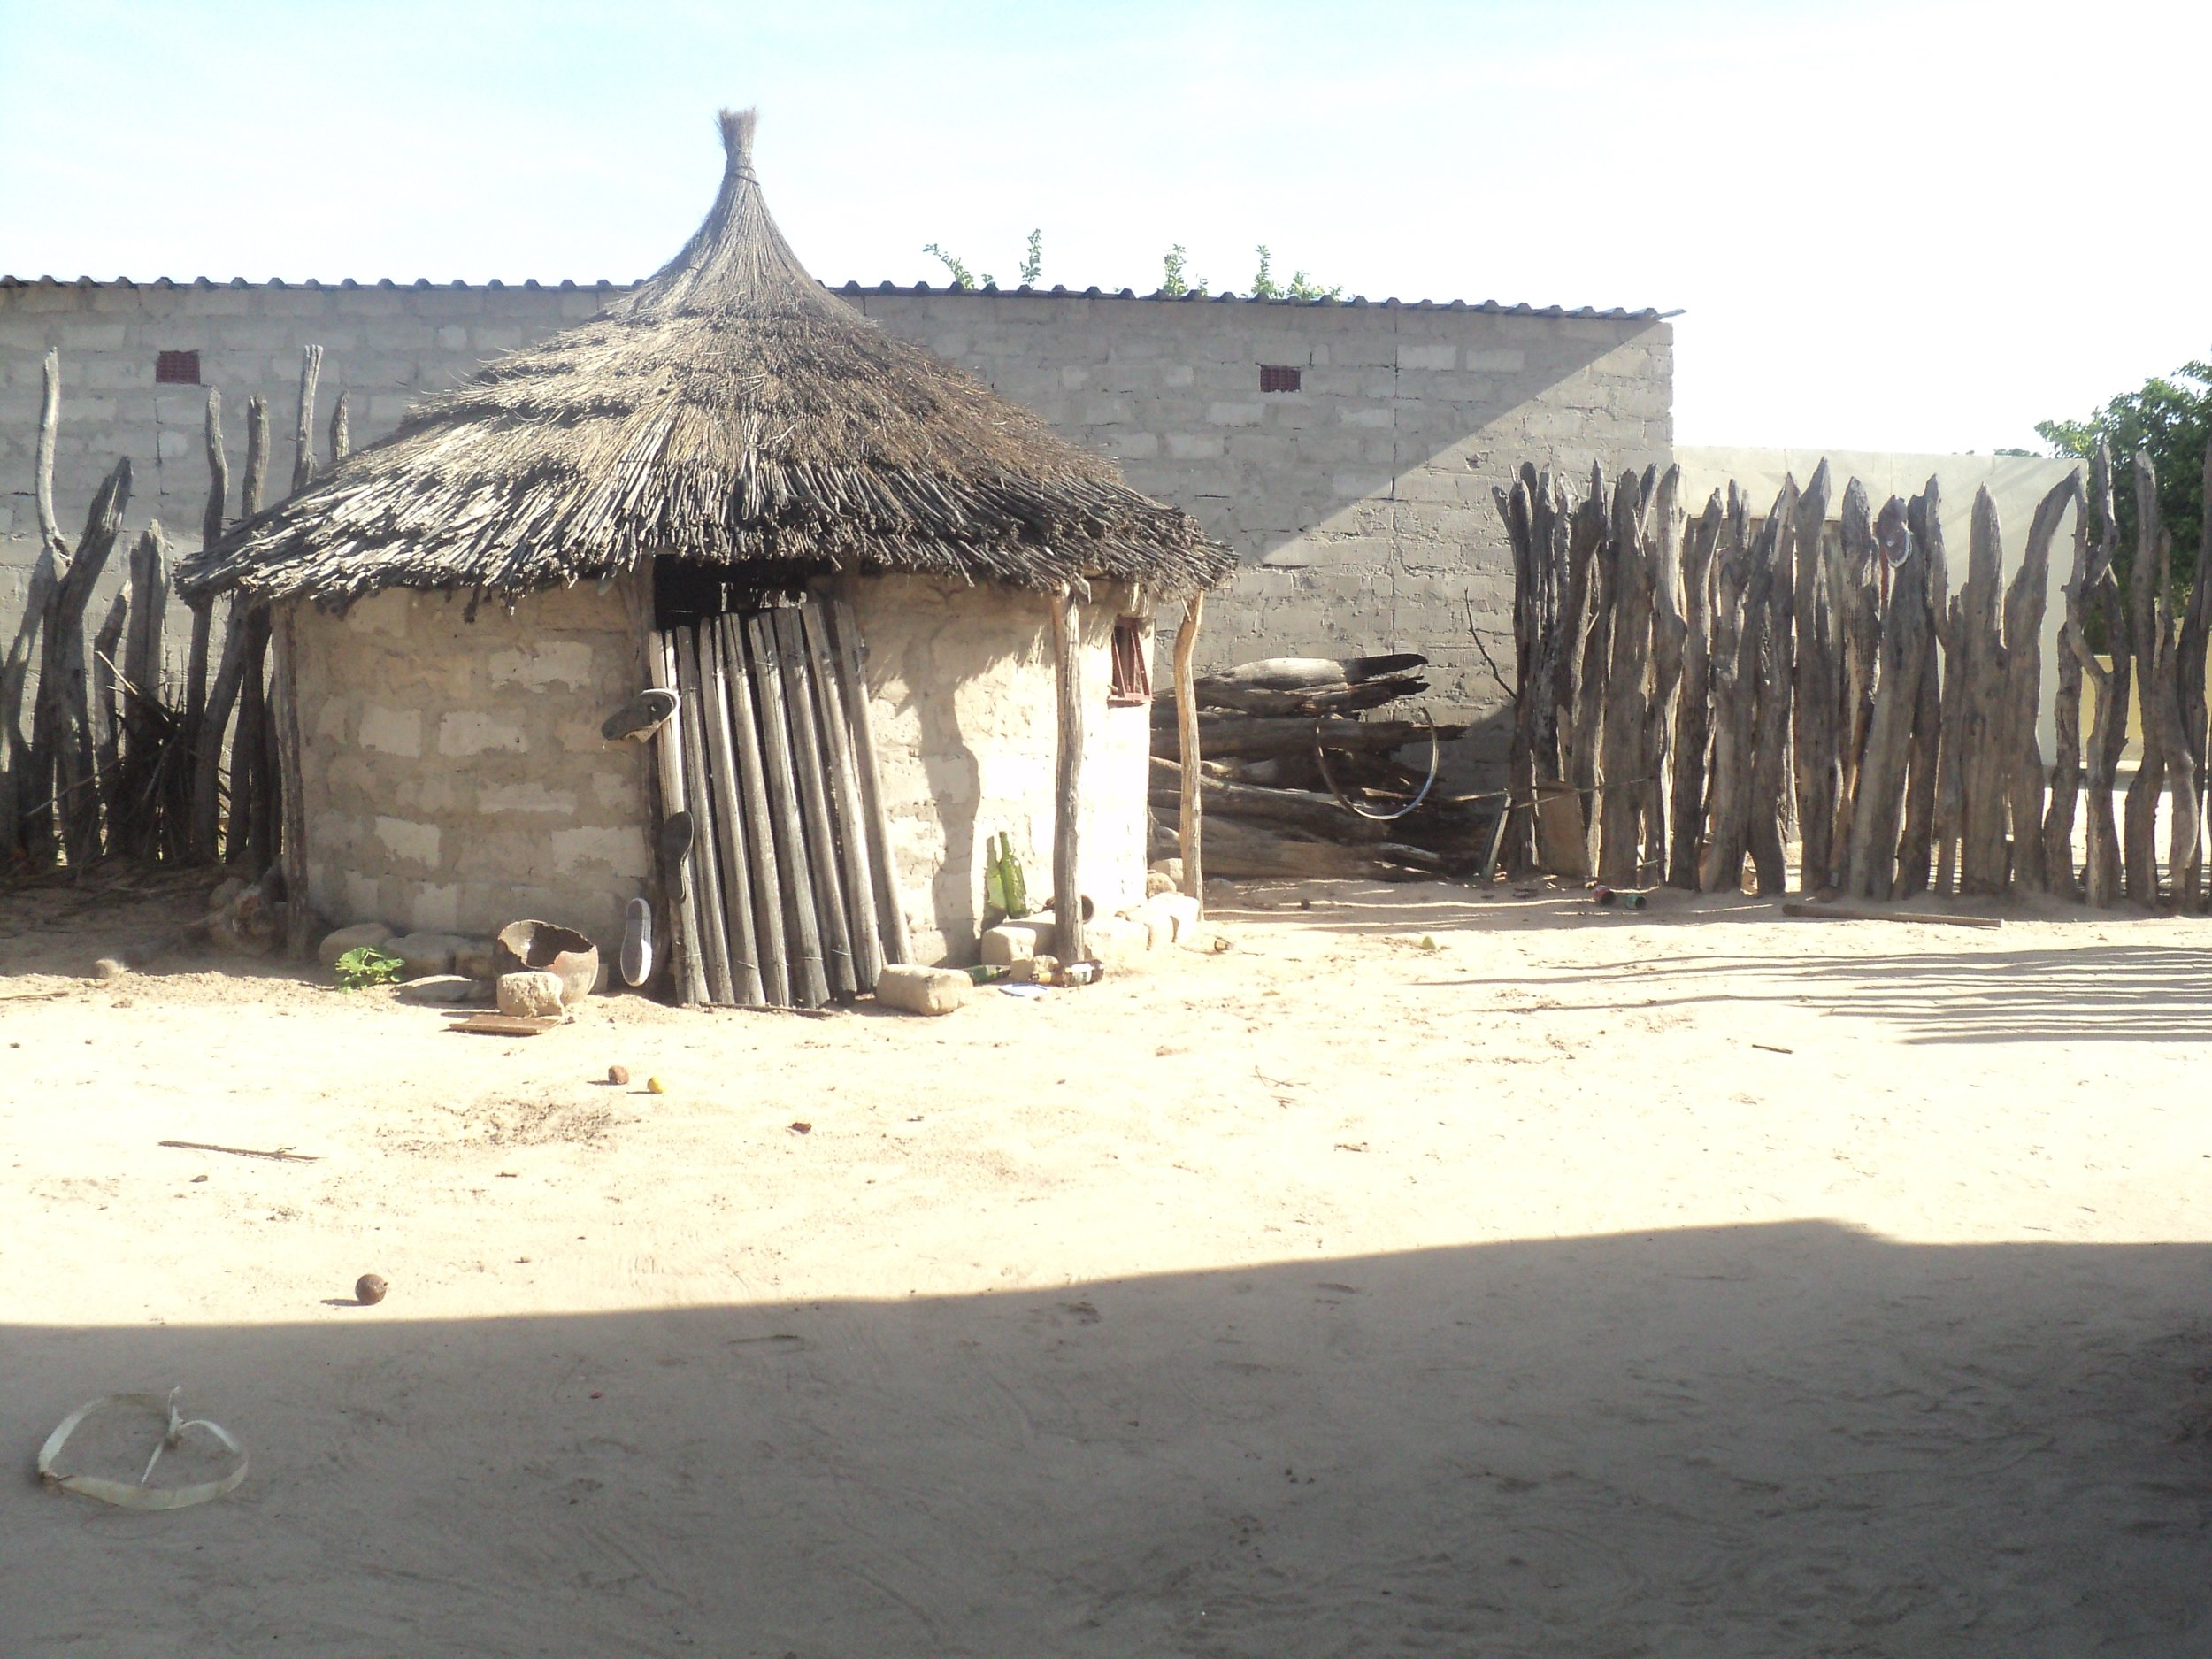 A traditional Owambo tribe hut in a northern Namibian village of the Omusati region.